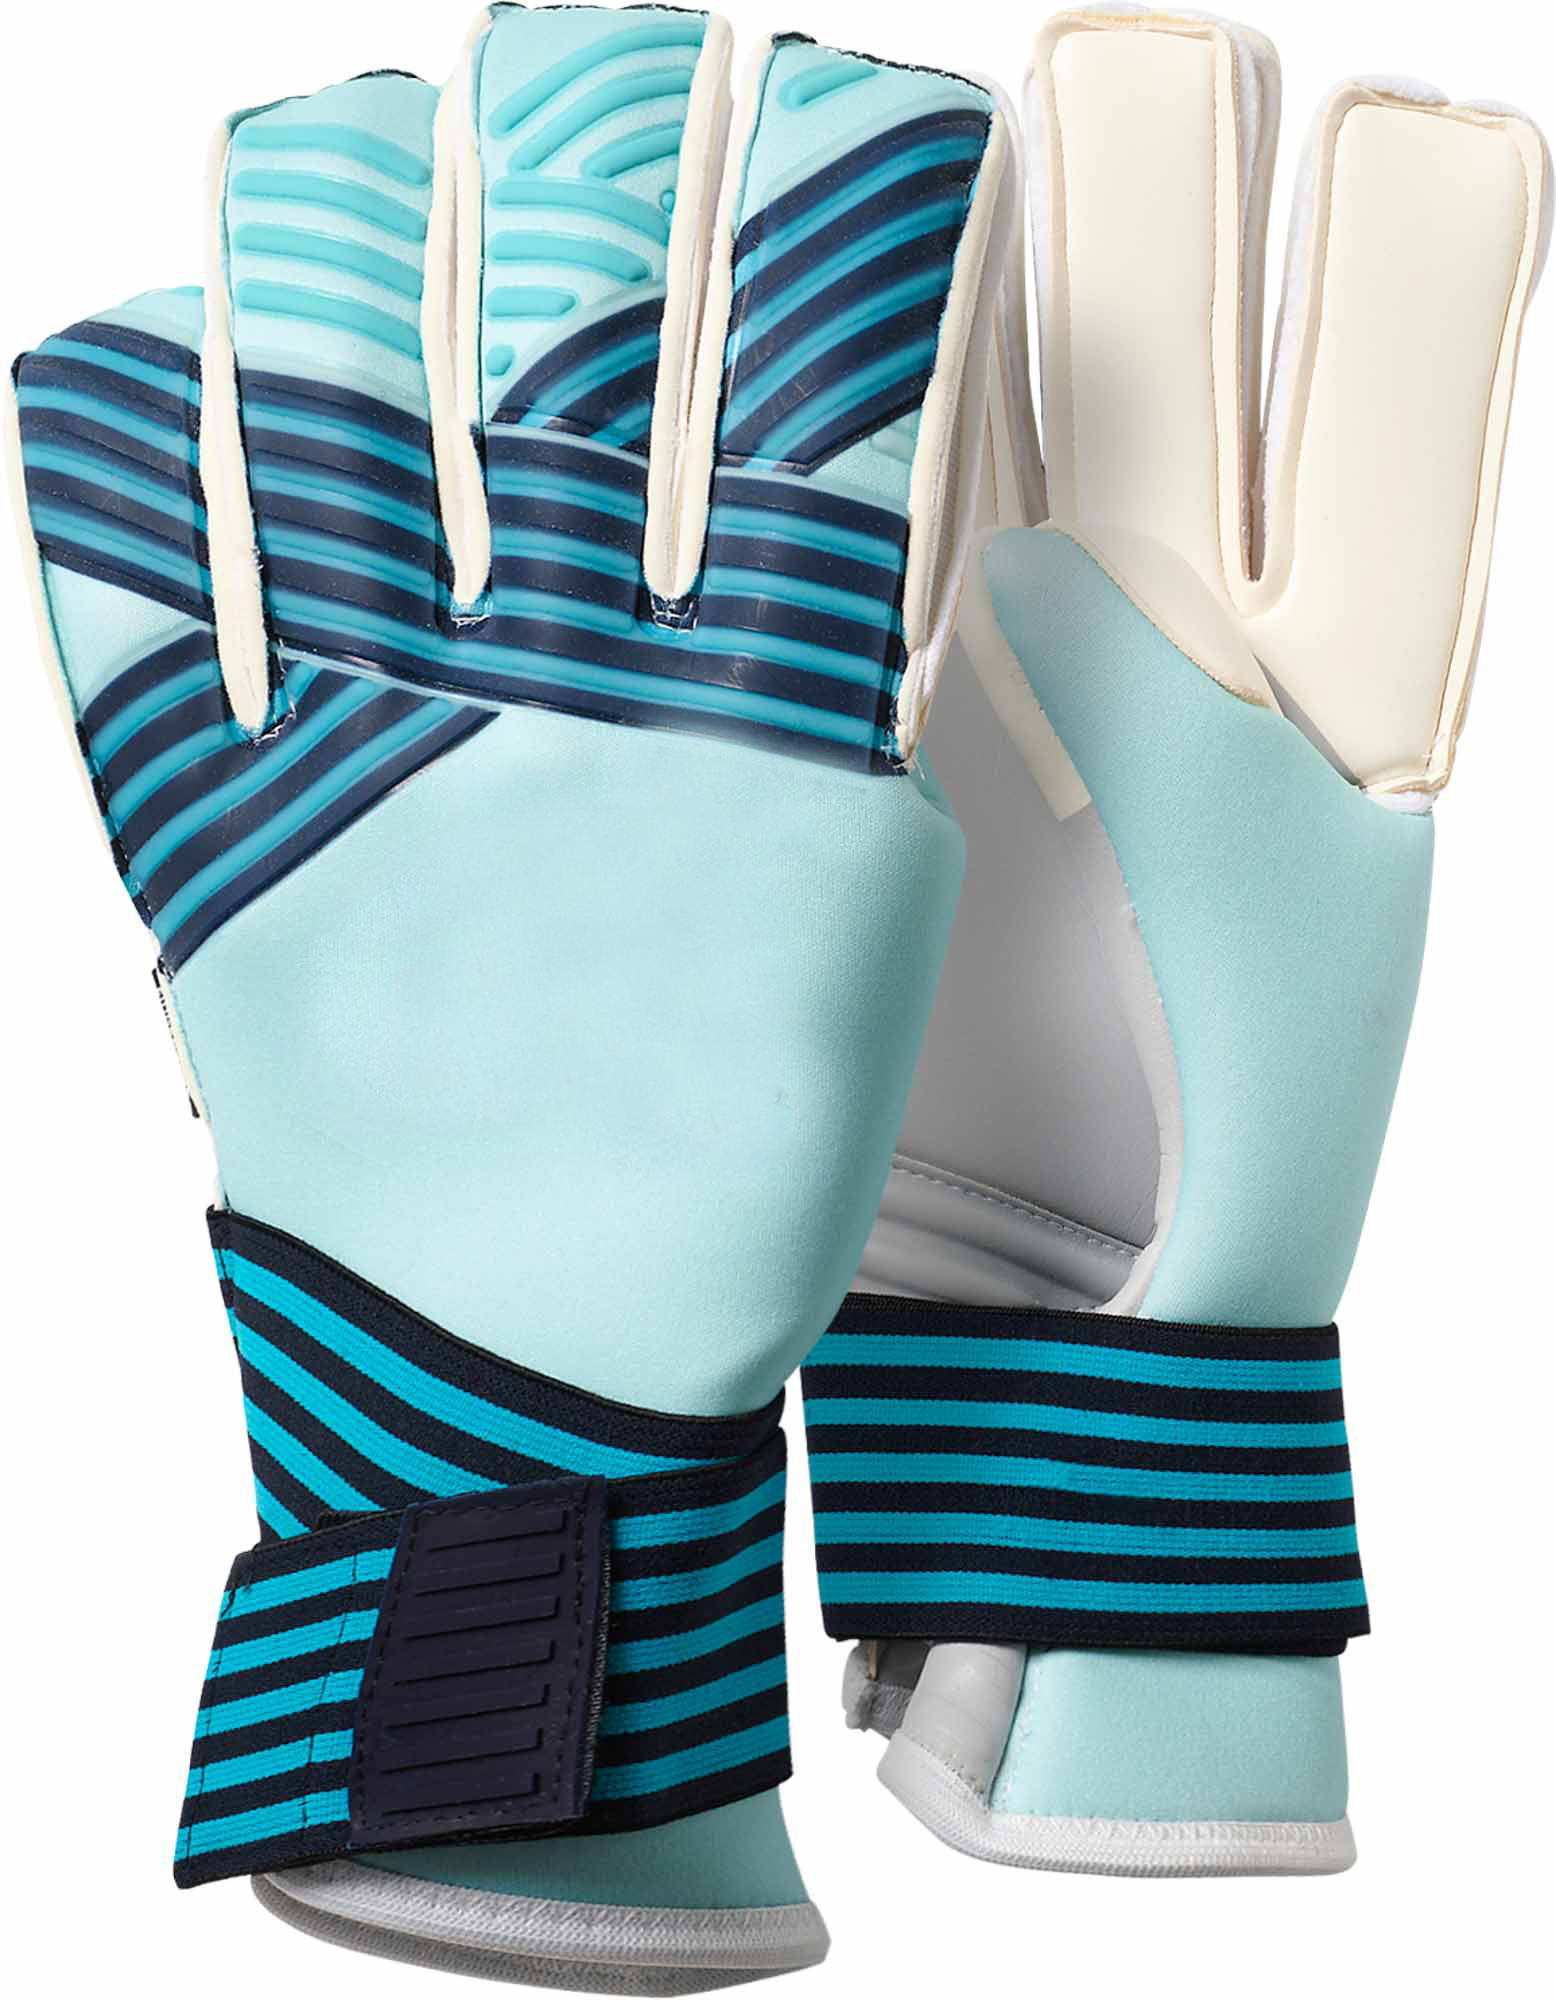 High Quality German Latex Goalkeeper Gloves/Professional Goalkeeper Gloves